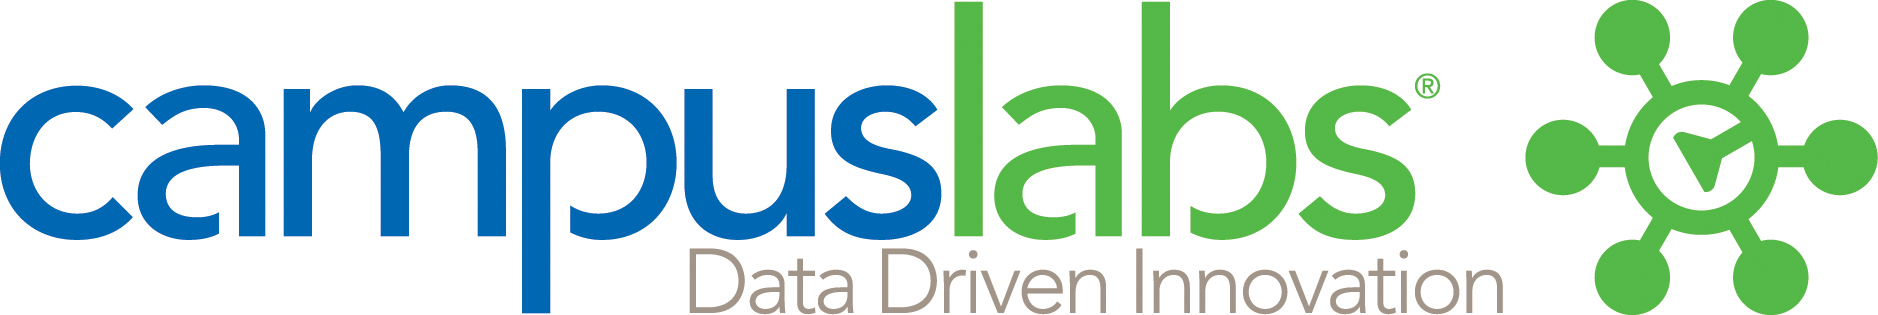 2019 NASPA Assessment, Persistence, and Data Analytics Conference